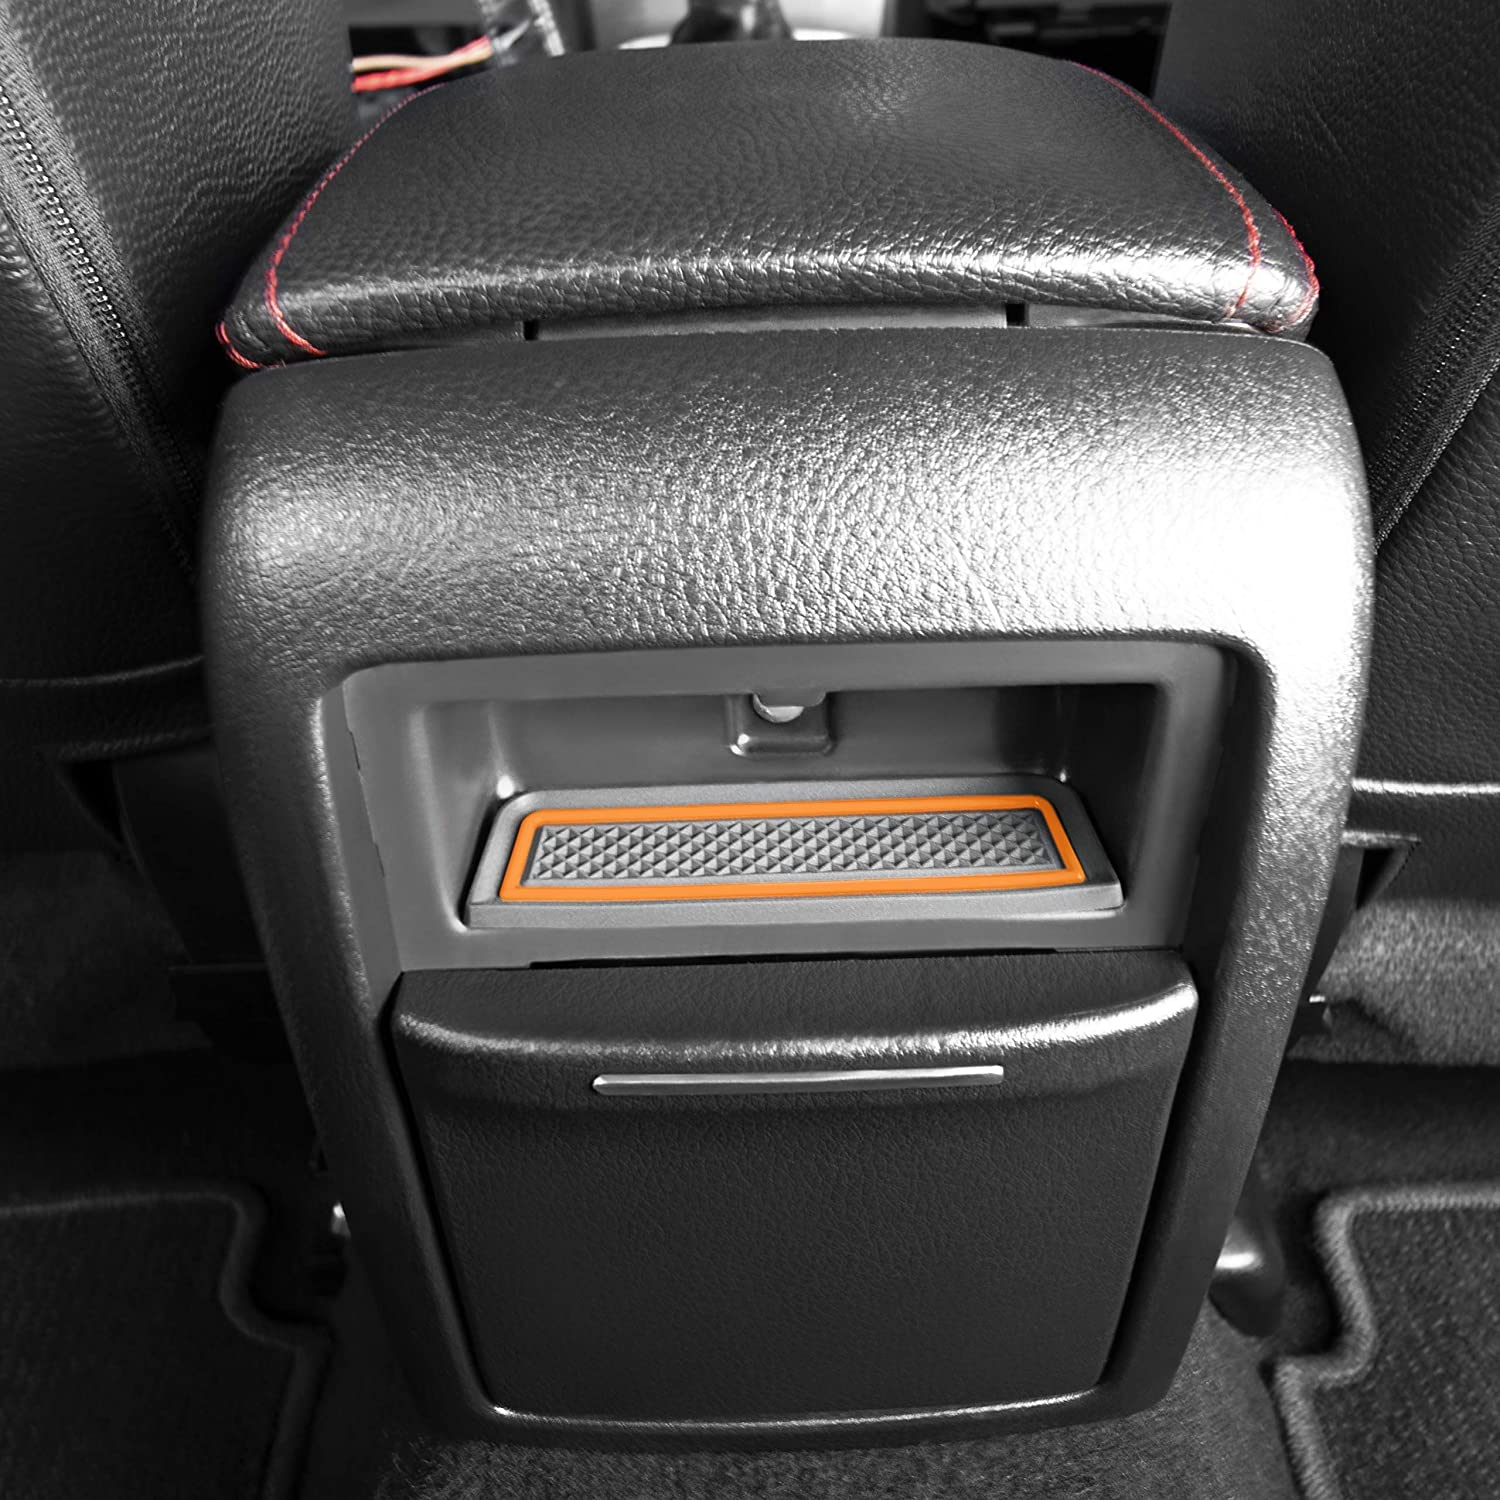 Red Custom Fit Cup and Console Liner Accessories for 2008-2014 Subaru Impreza WRX STI Door